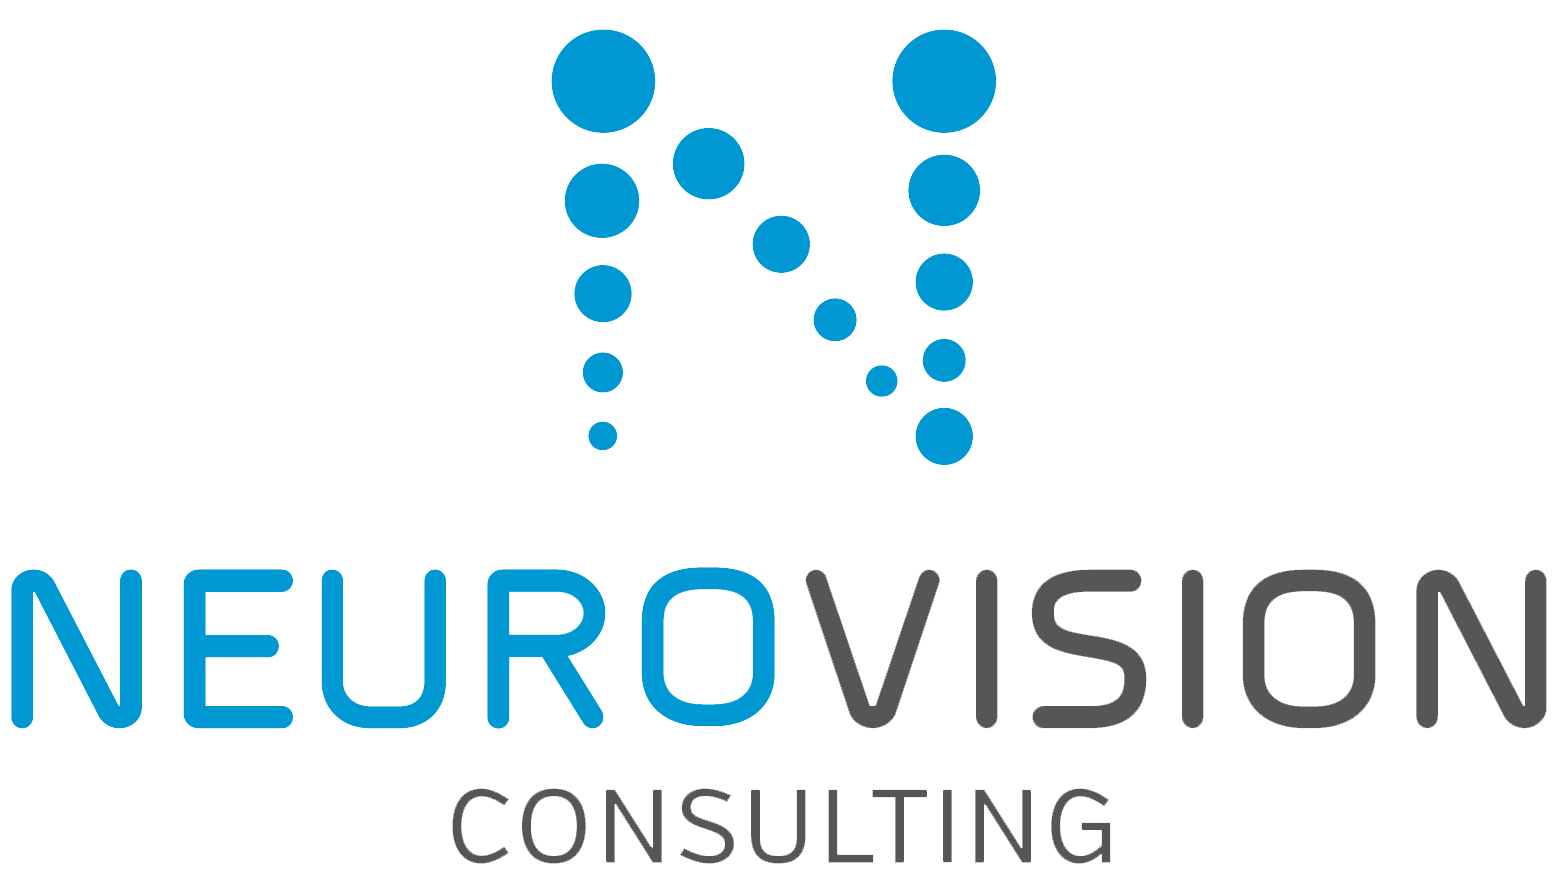 Neurovision Consulting